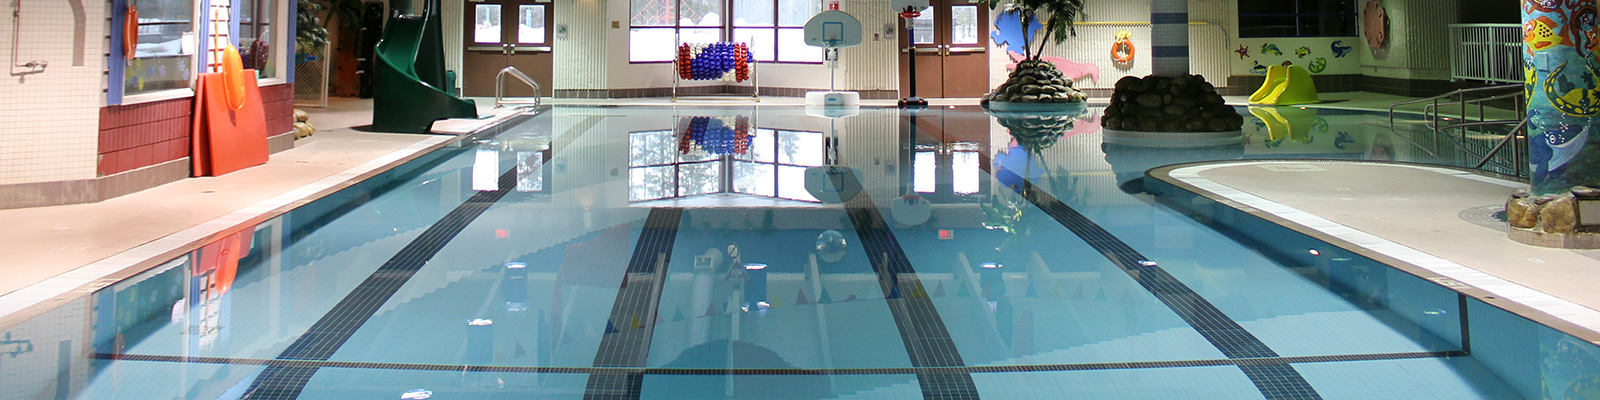 Tumbler Ridge Community Centre Pool